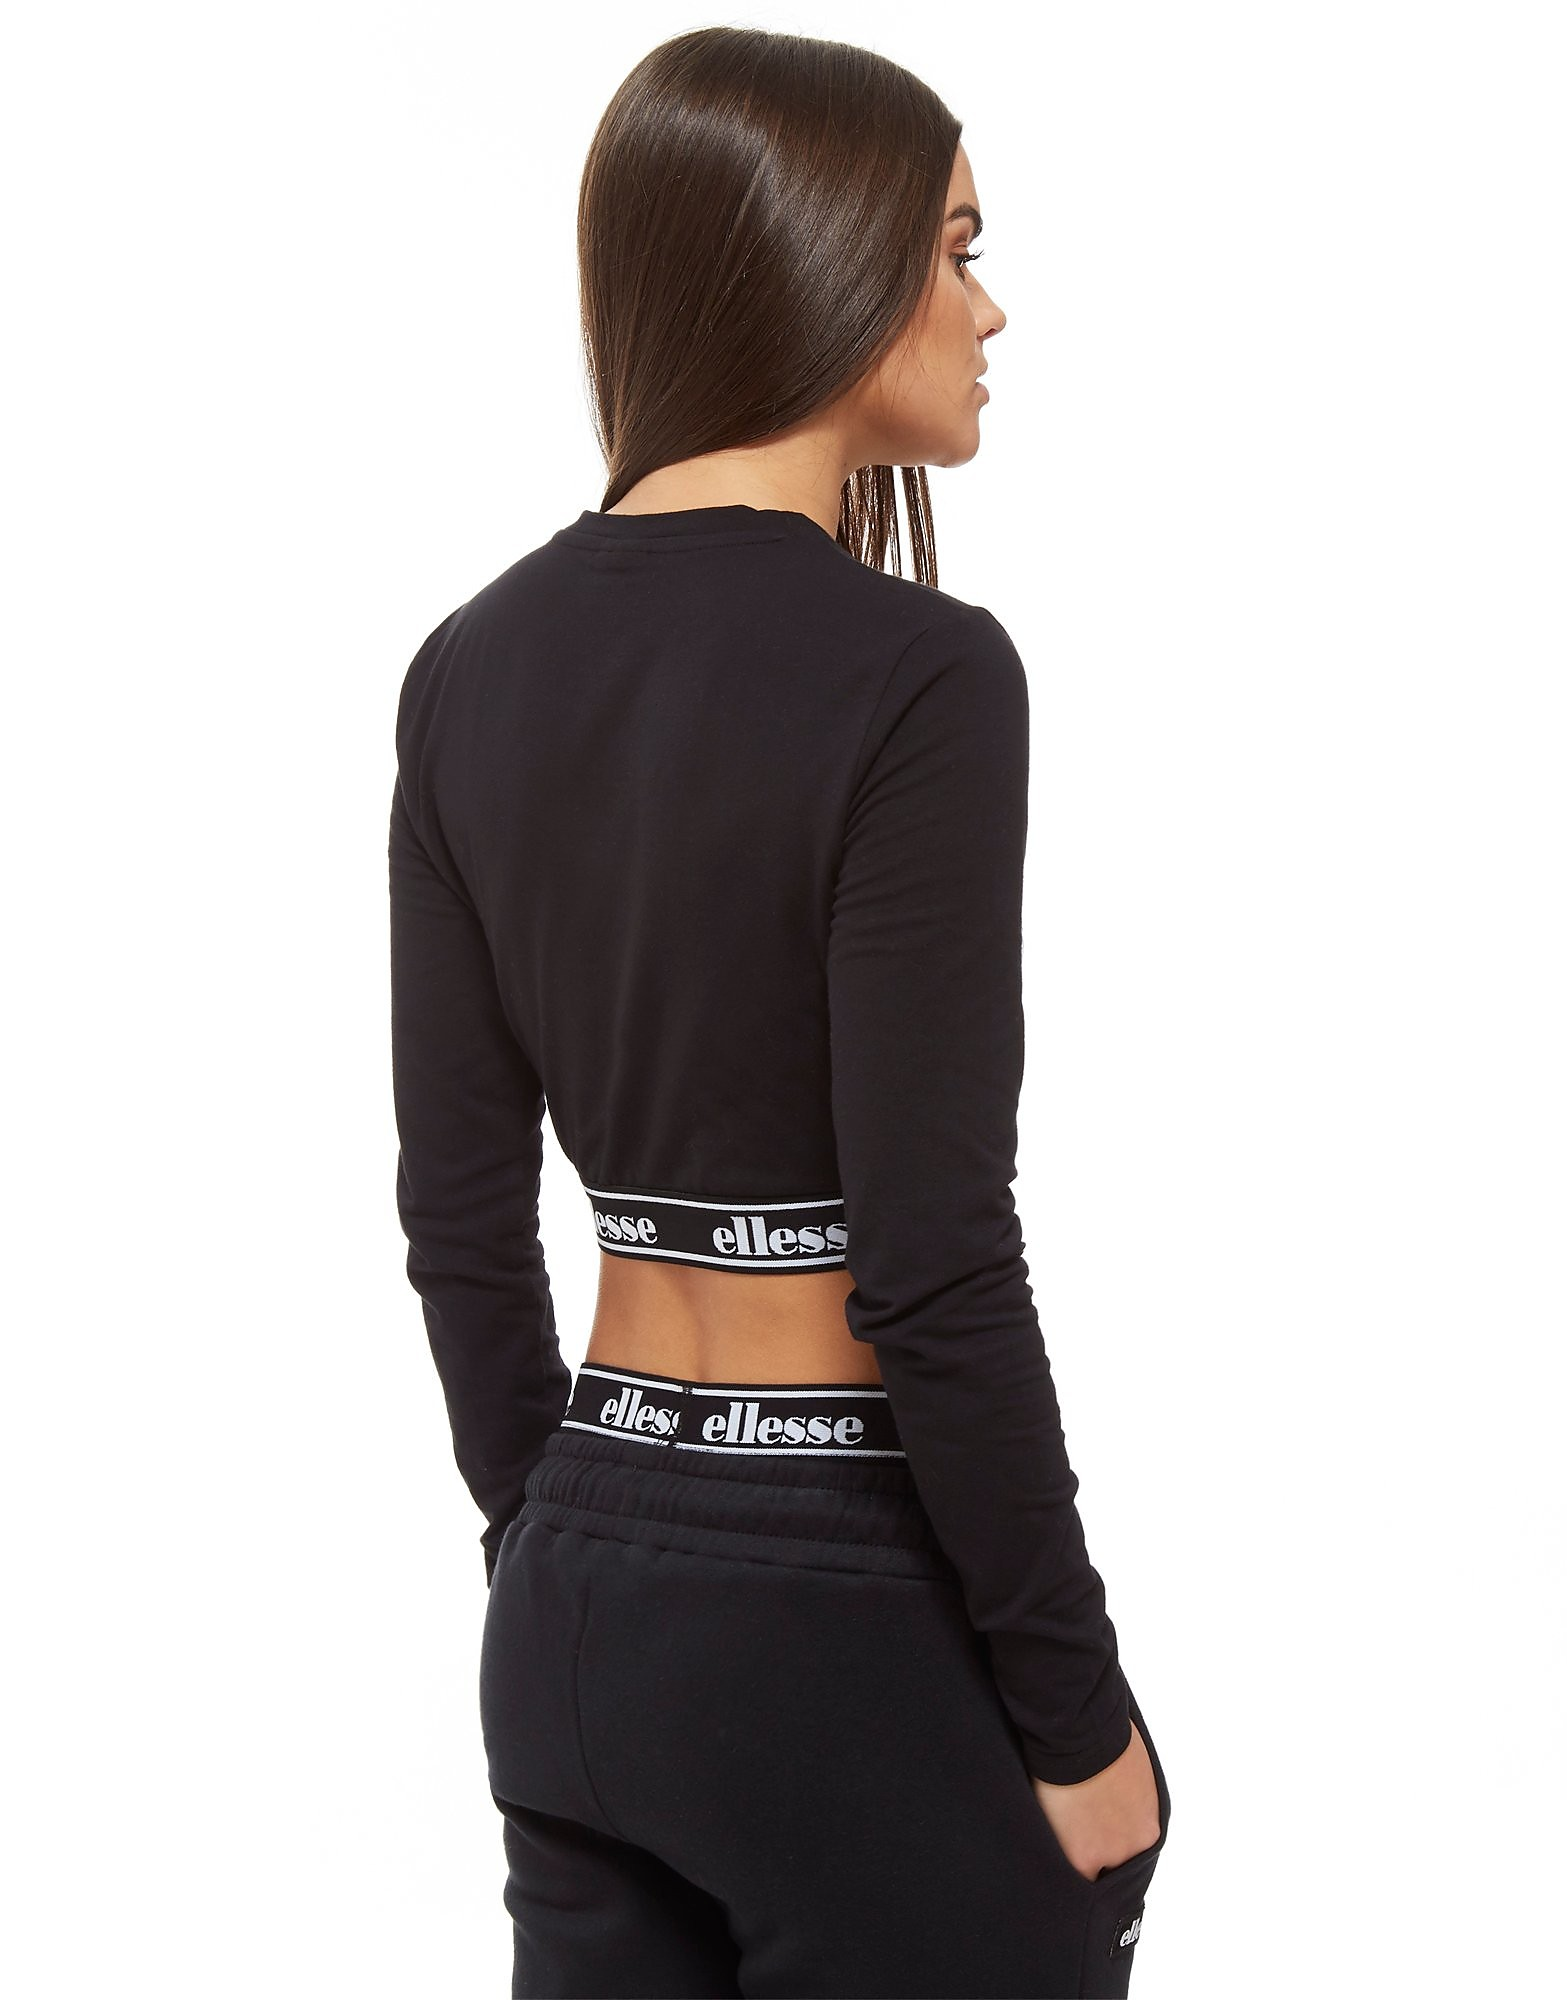 Ellesse Tape Waist Long Sleeve Crop Top